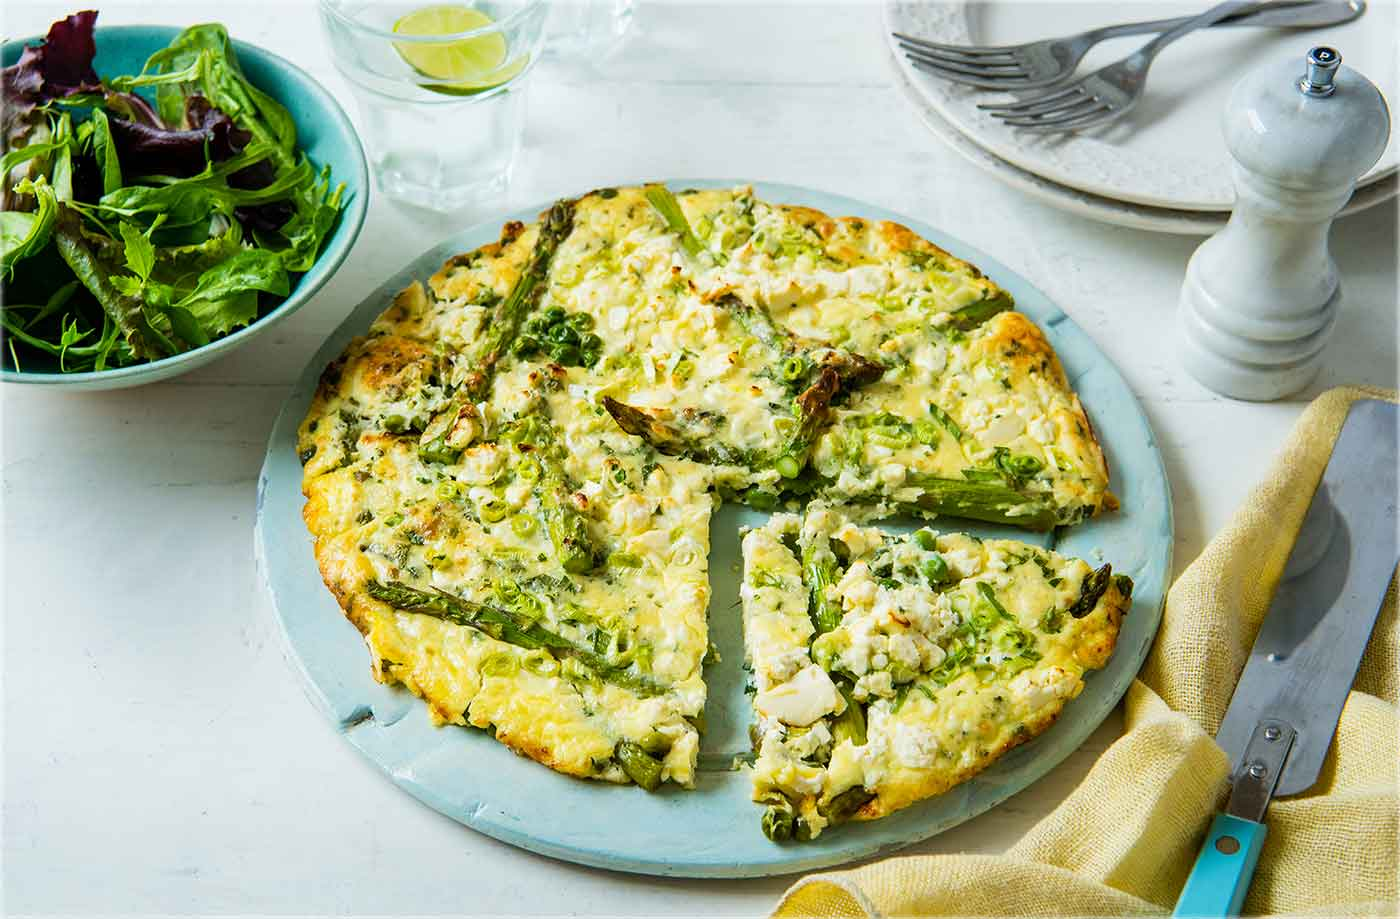 Crustless quiche with asparagus and peas